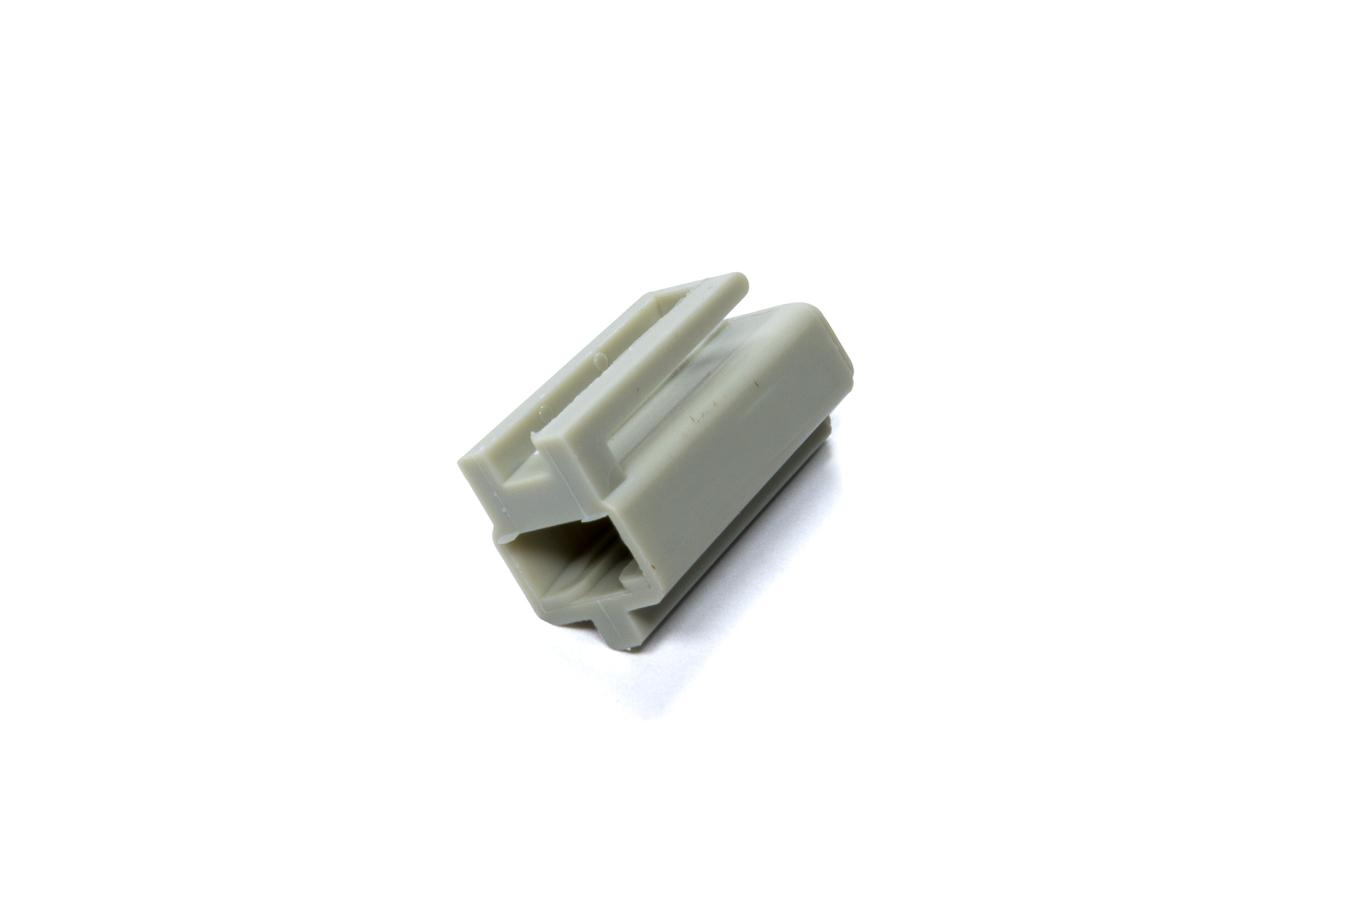 MSD Ignition CON15856 Wire Terminal, Insulated, Female, Gray, GM HEI Ignition, Each